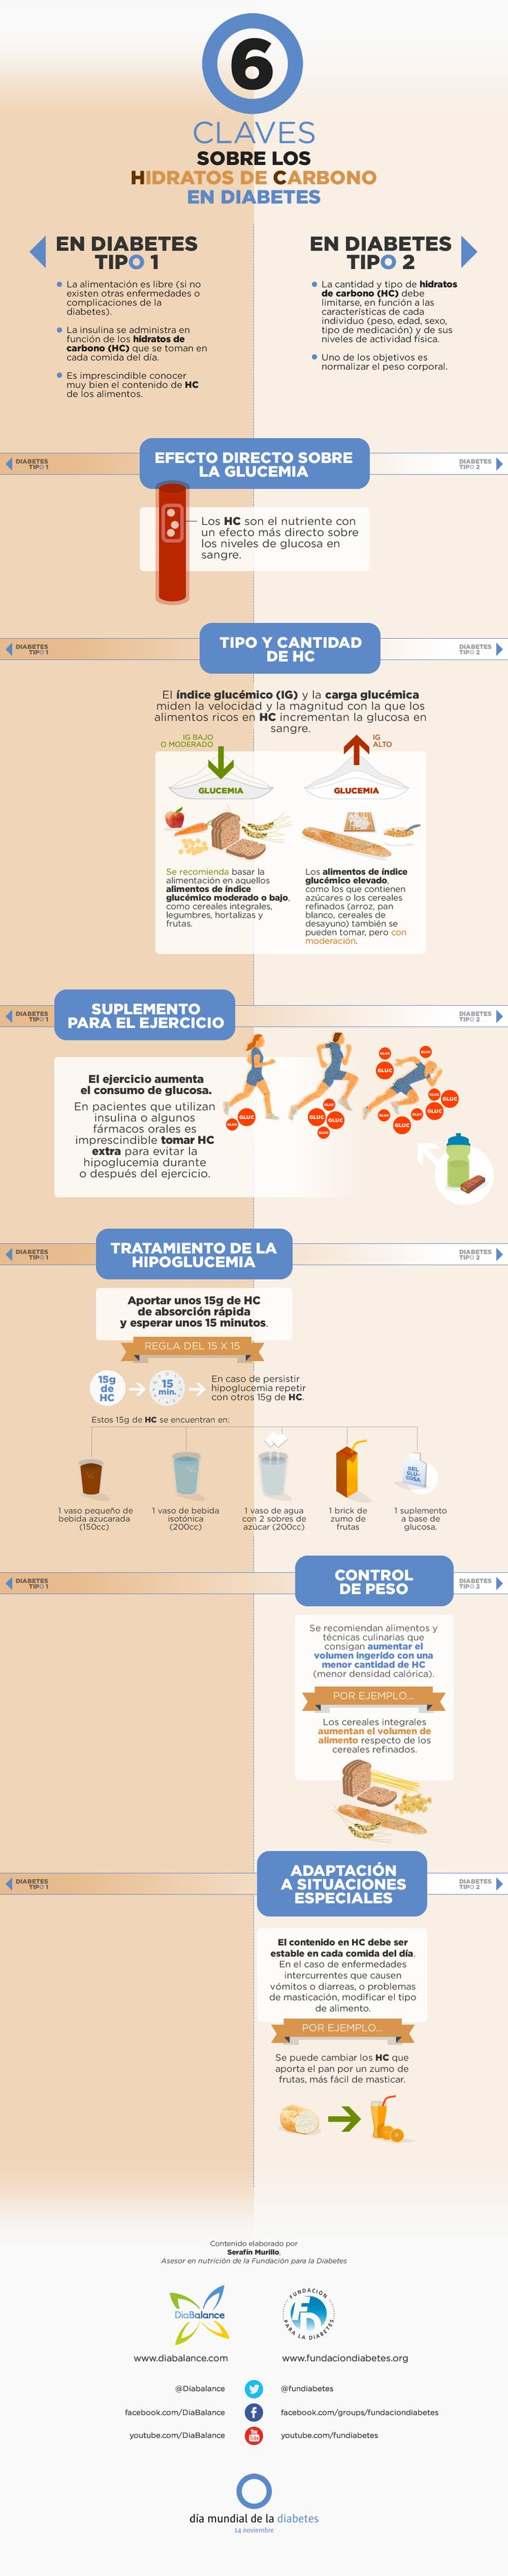 "Infografía ""6 Claves sobre los Hidratos de Carbono en Diabetes"""